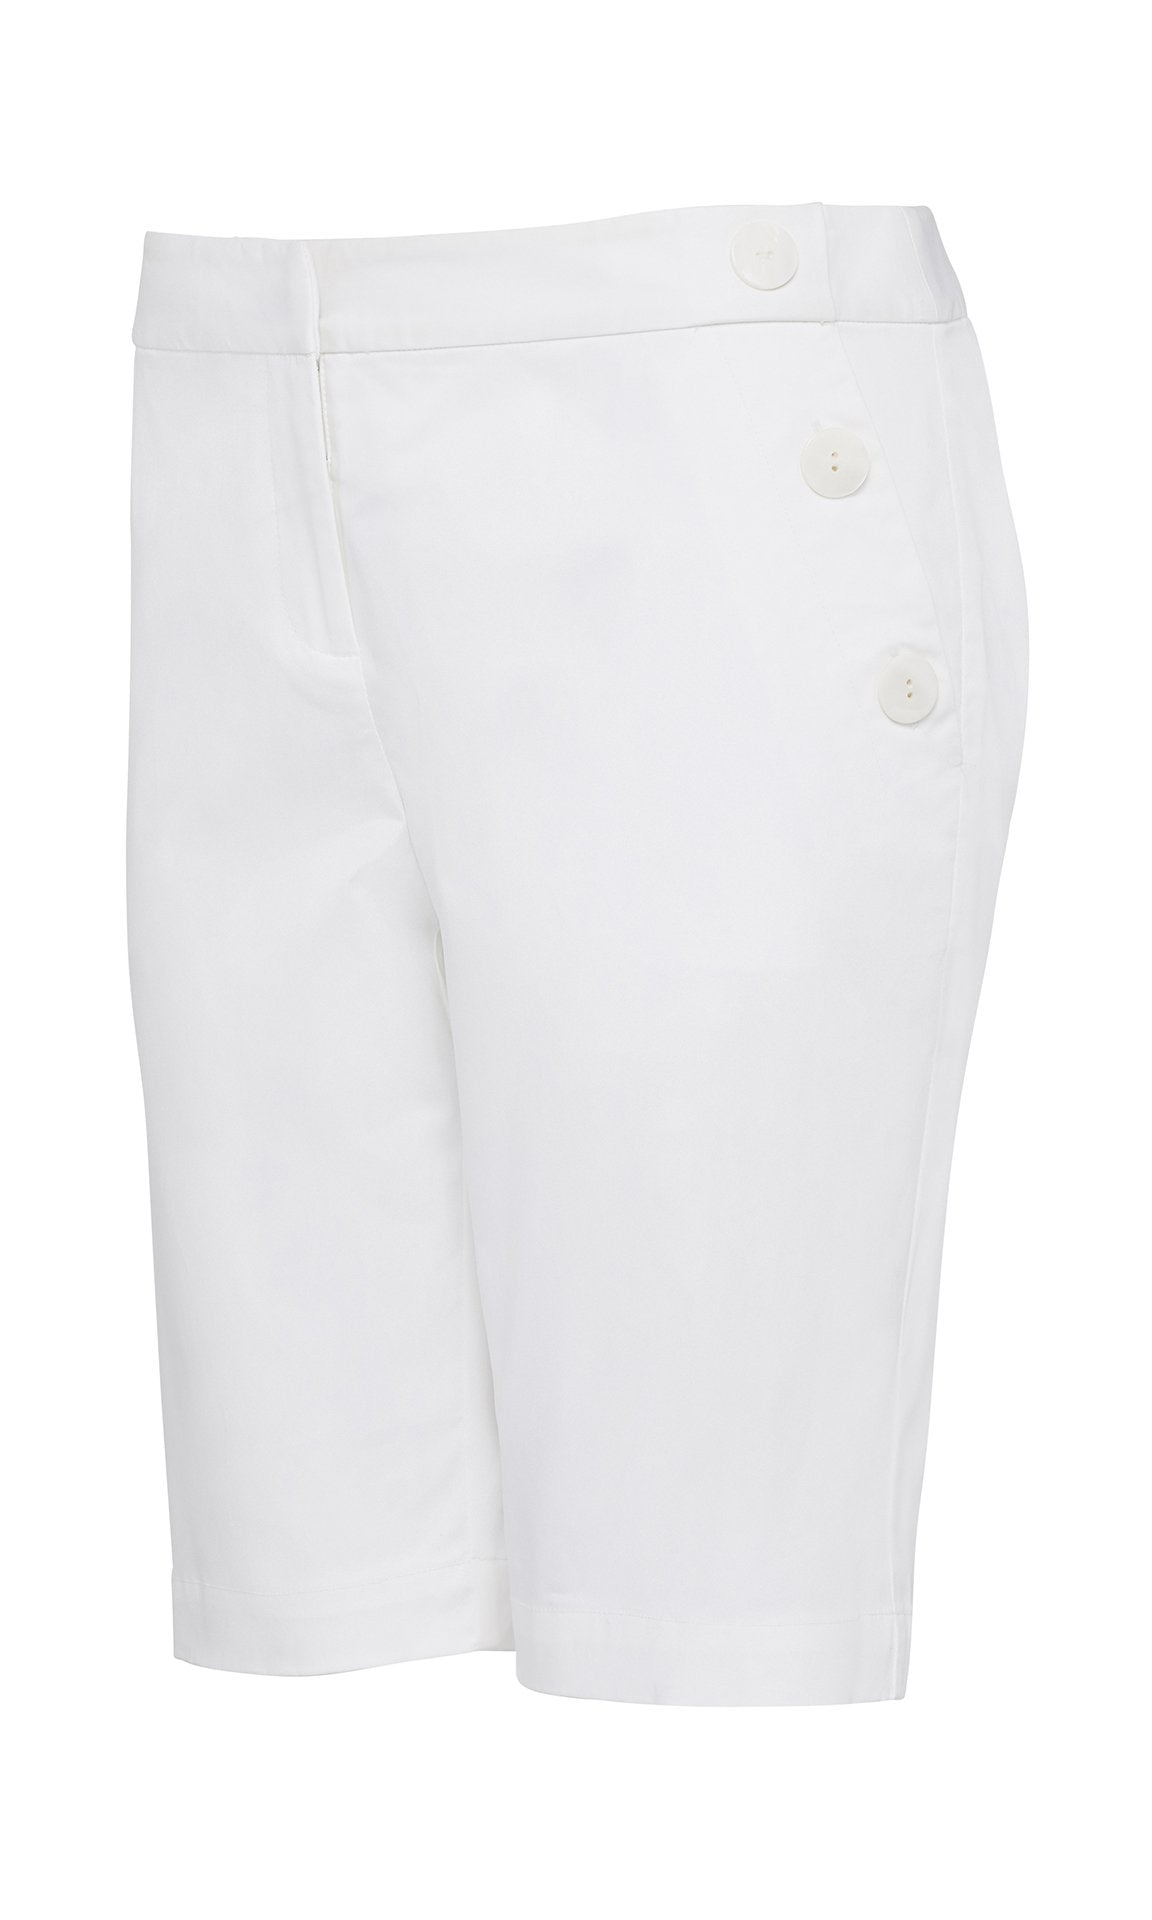 Baxter Short - White